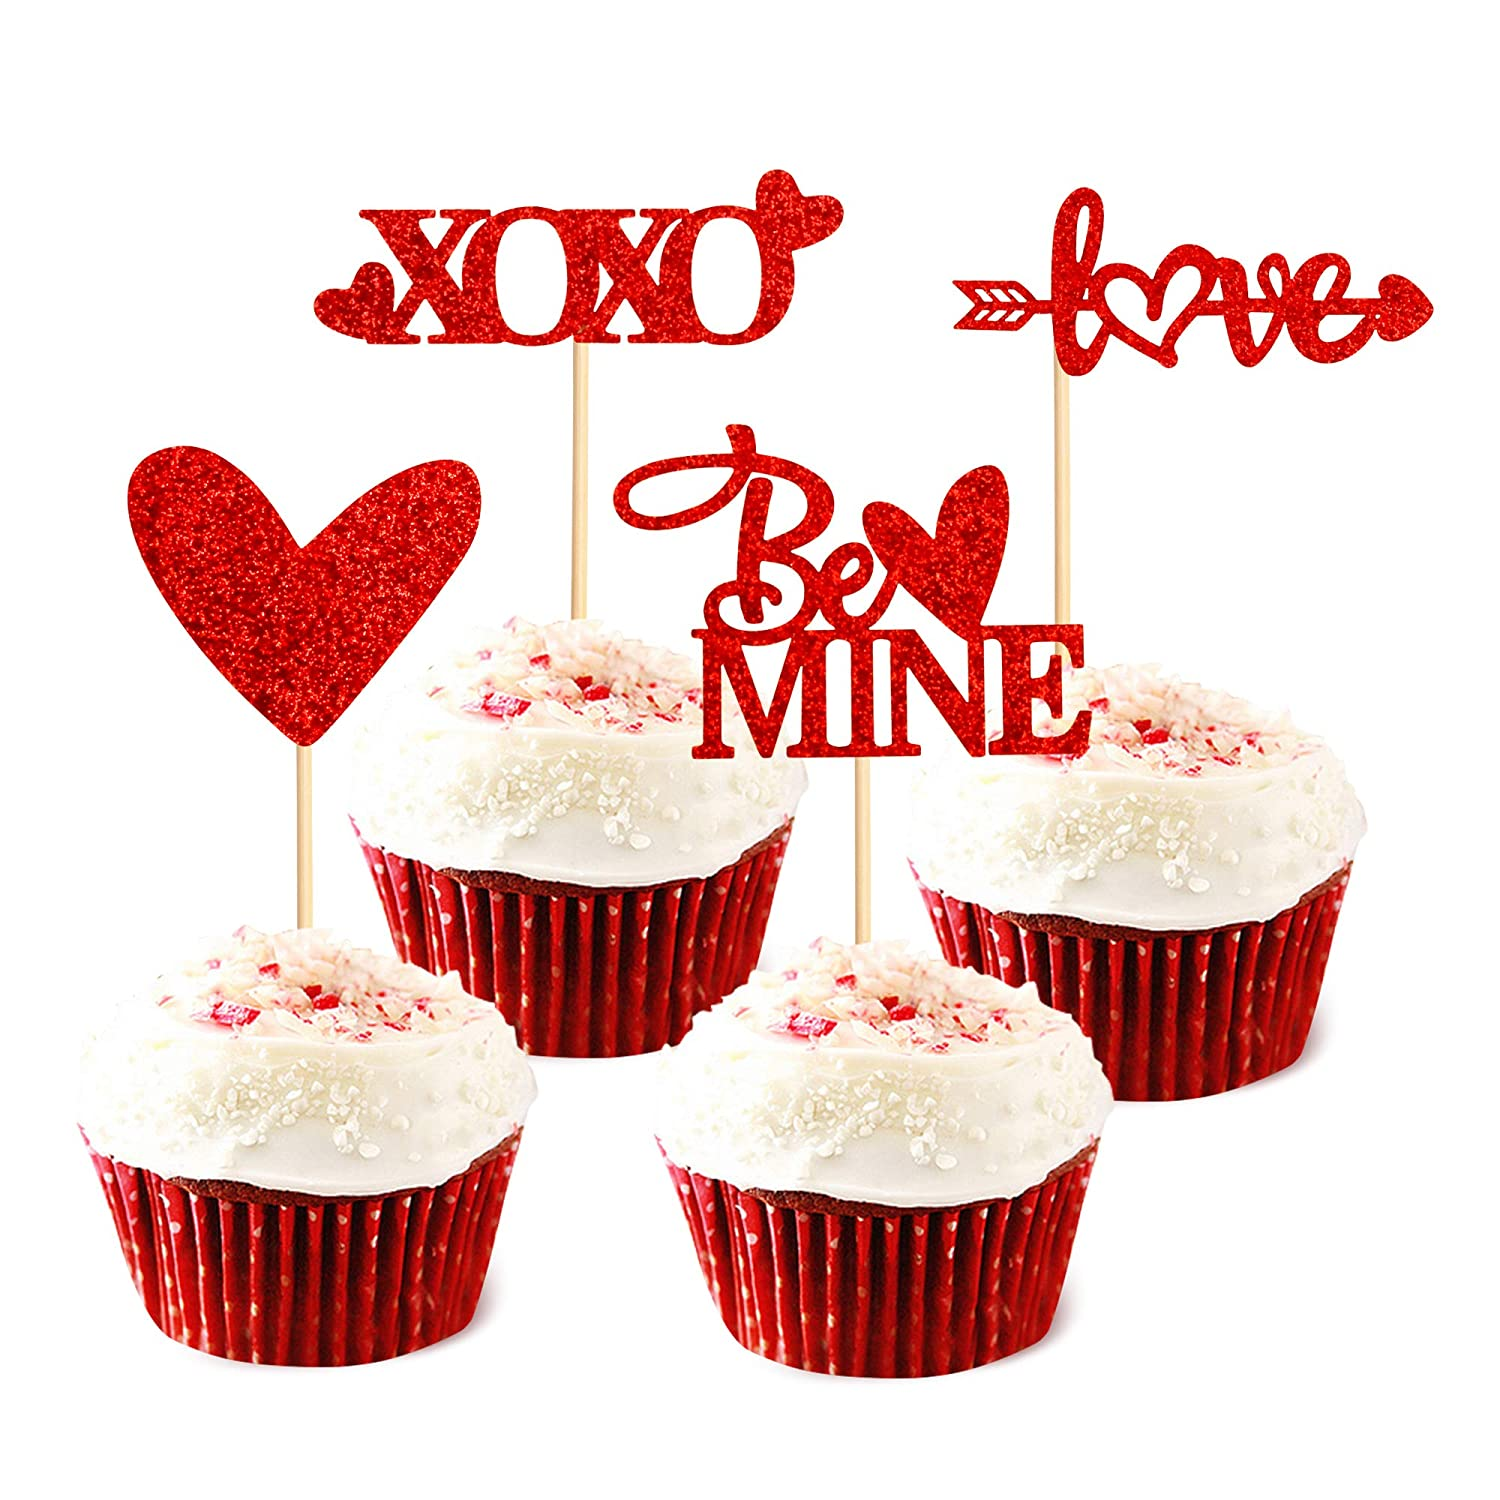 Ercaido 48 Pack Red Glitter Valentine's Day Cupcake Toppers Love Theme be Mine Wedding Engagement Cupcake Picks Bridal Shower Valentine's Party Cake Decorations